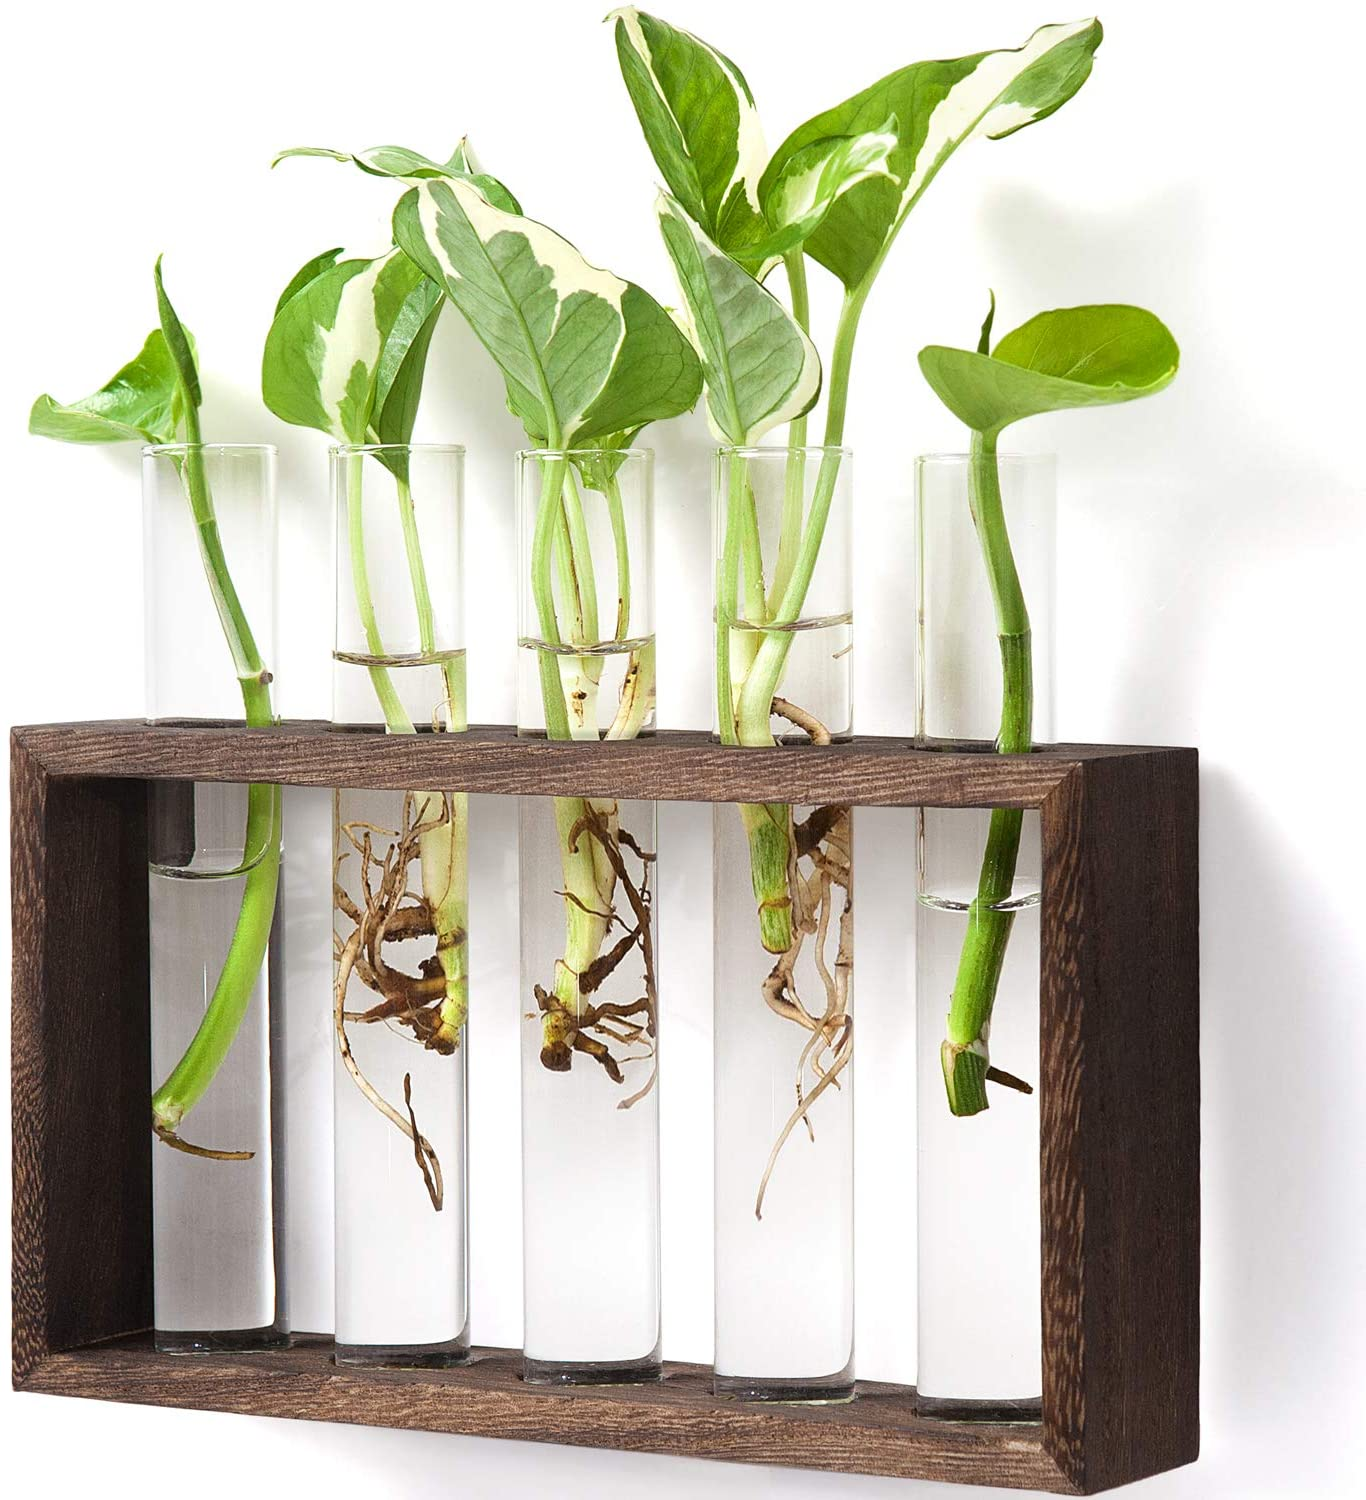 Mkono Wall Hanging Glass Planter Propagation Station Modern Flower Bud Vase in Wood Stand Rack Tabletop Terrarium for Hydroponics Plants, Home Office Decoration with 5 Test Tube, Medium, Brown